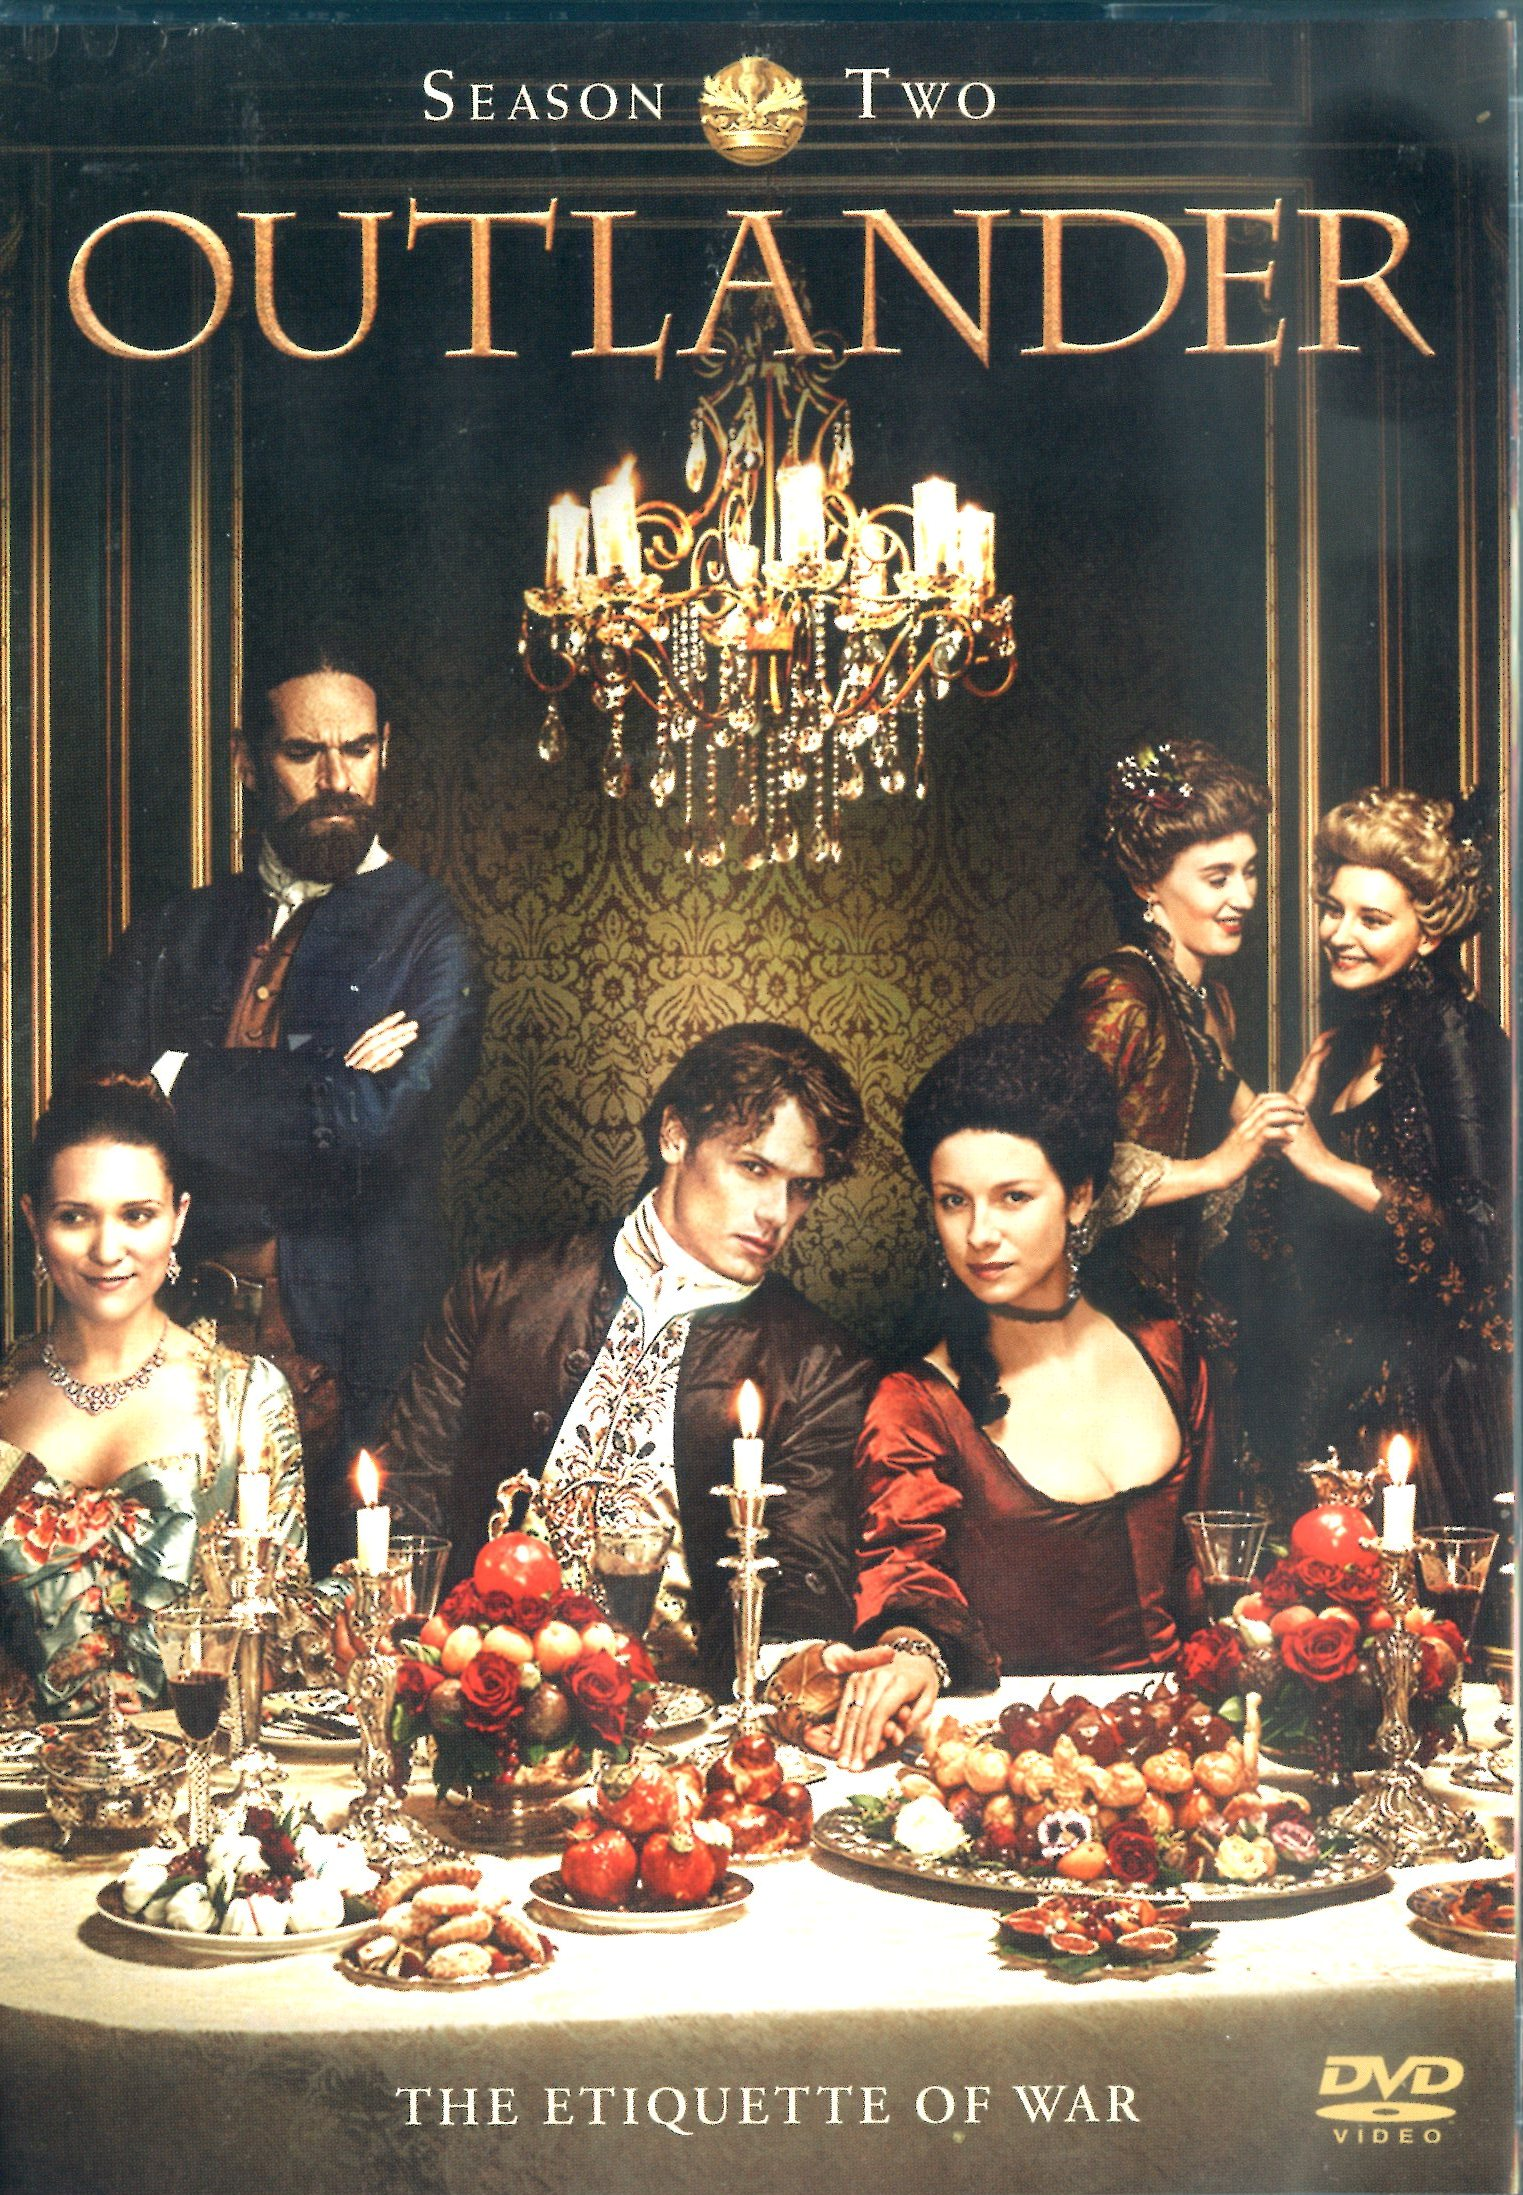 Outlander(家用版) the complete second season = 異鄉人 : 古戰場傳奇. 第二季